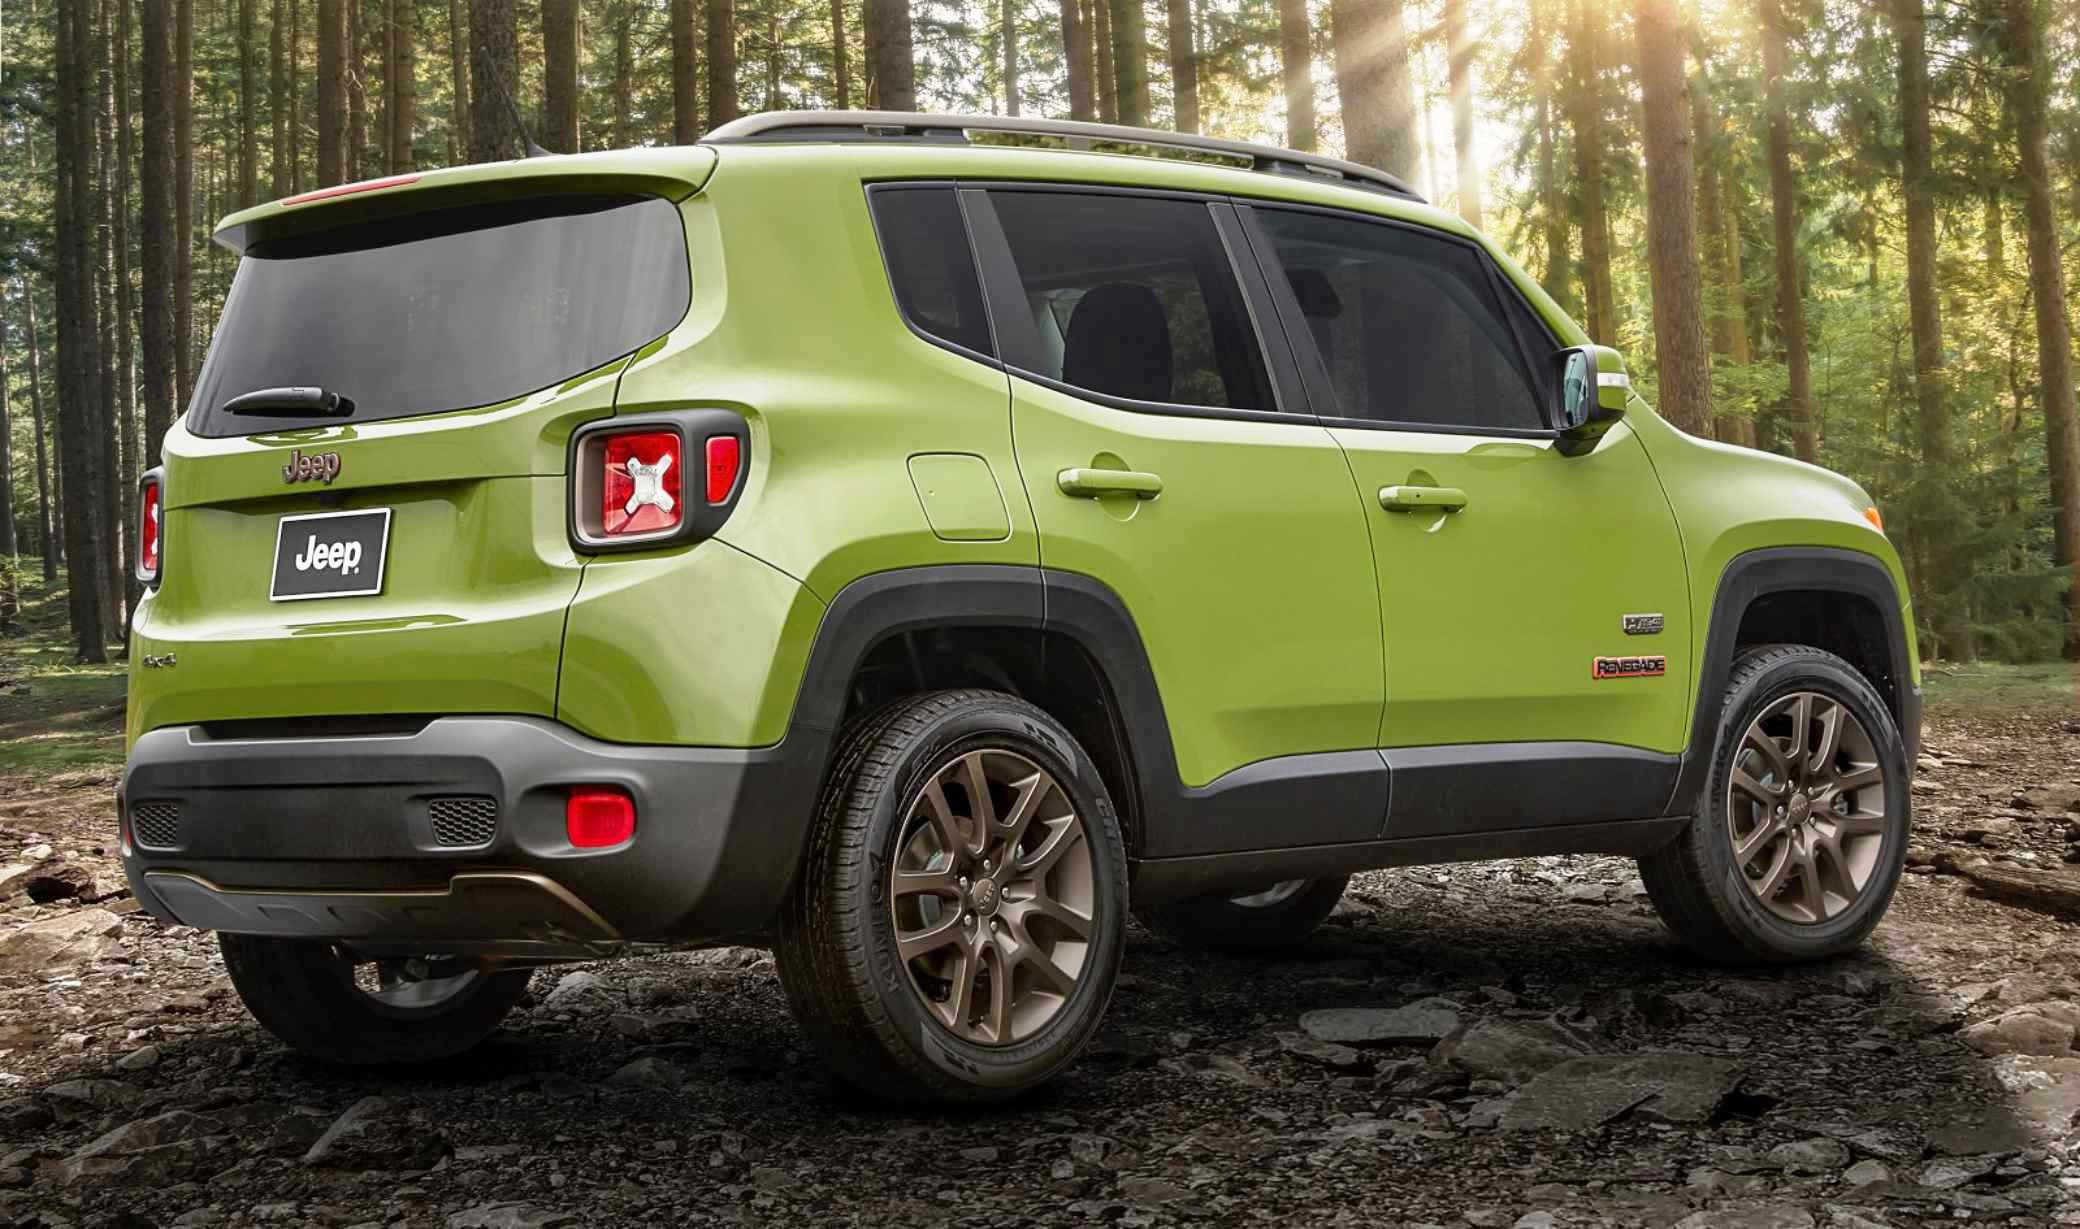 2017 Jeep Renegade With Images Jeep Renegade Jeep Renegade